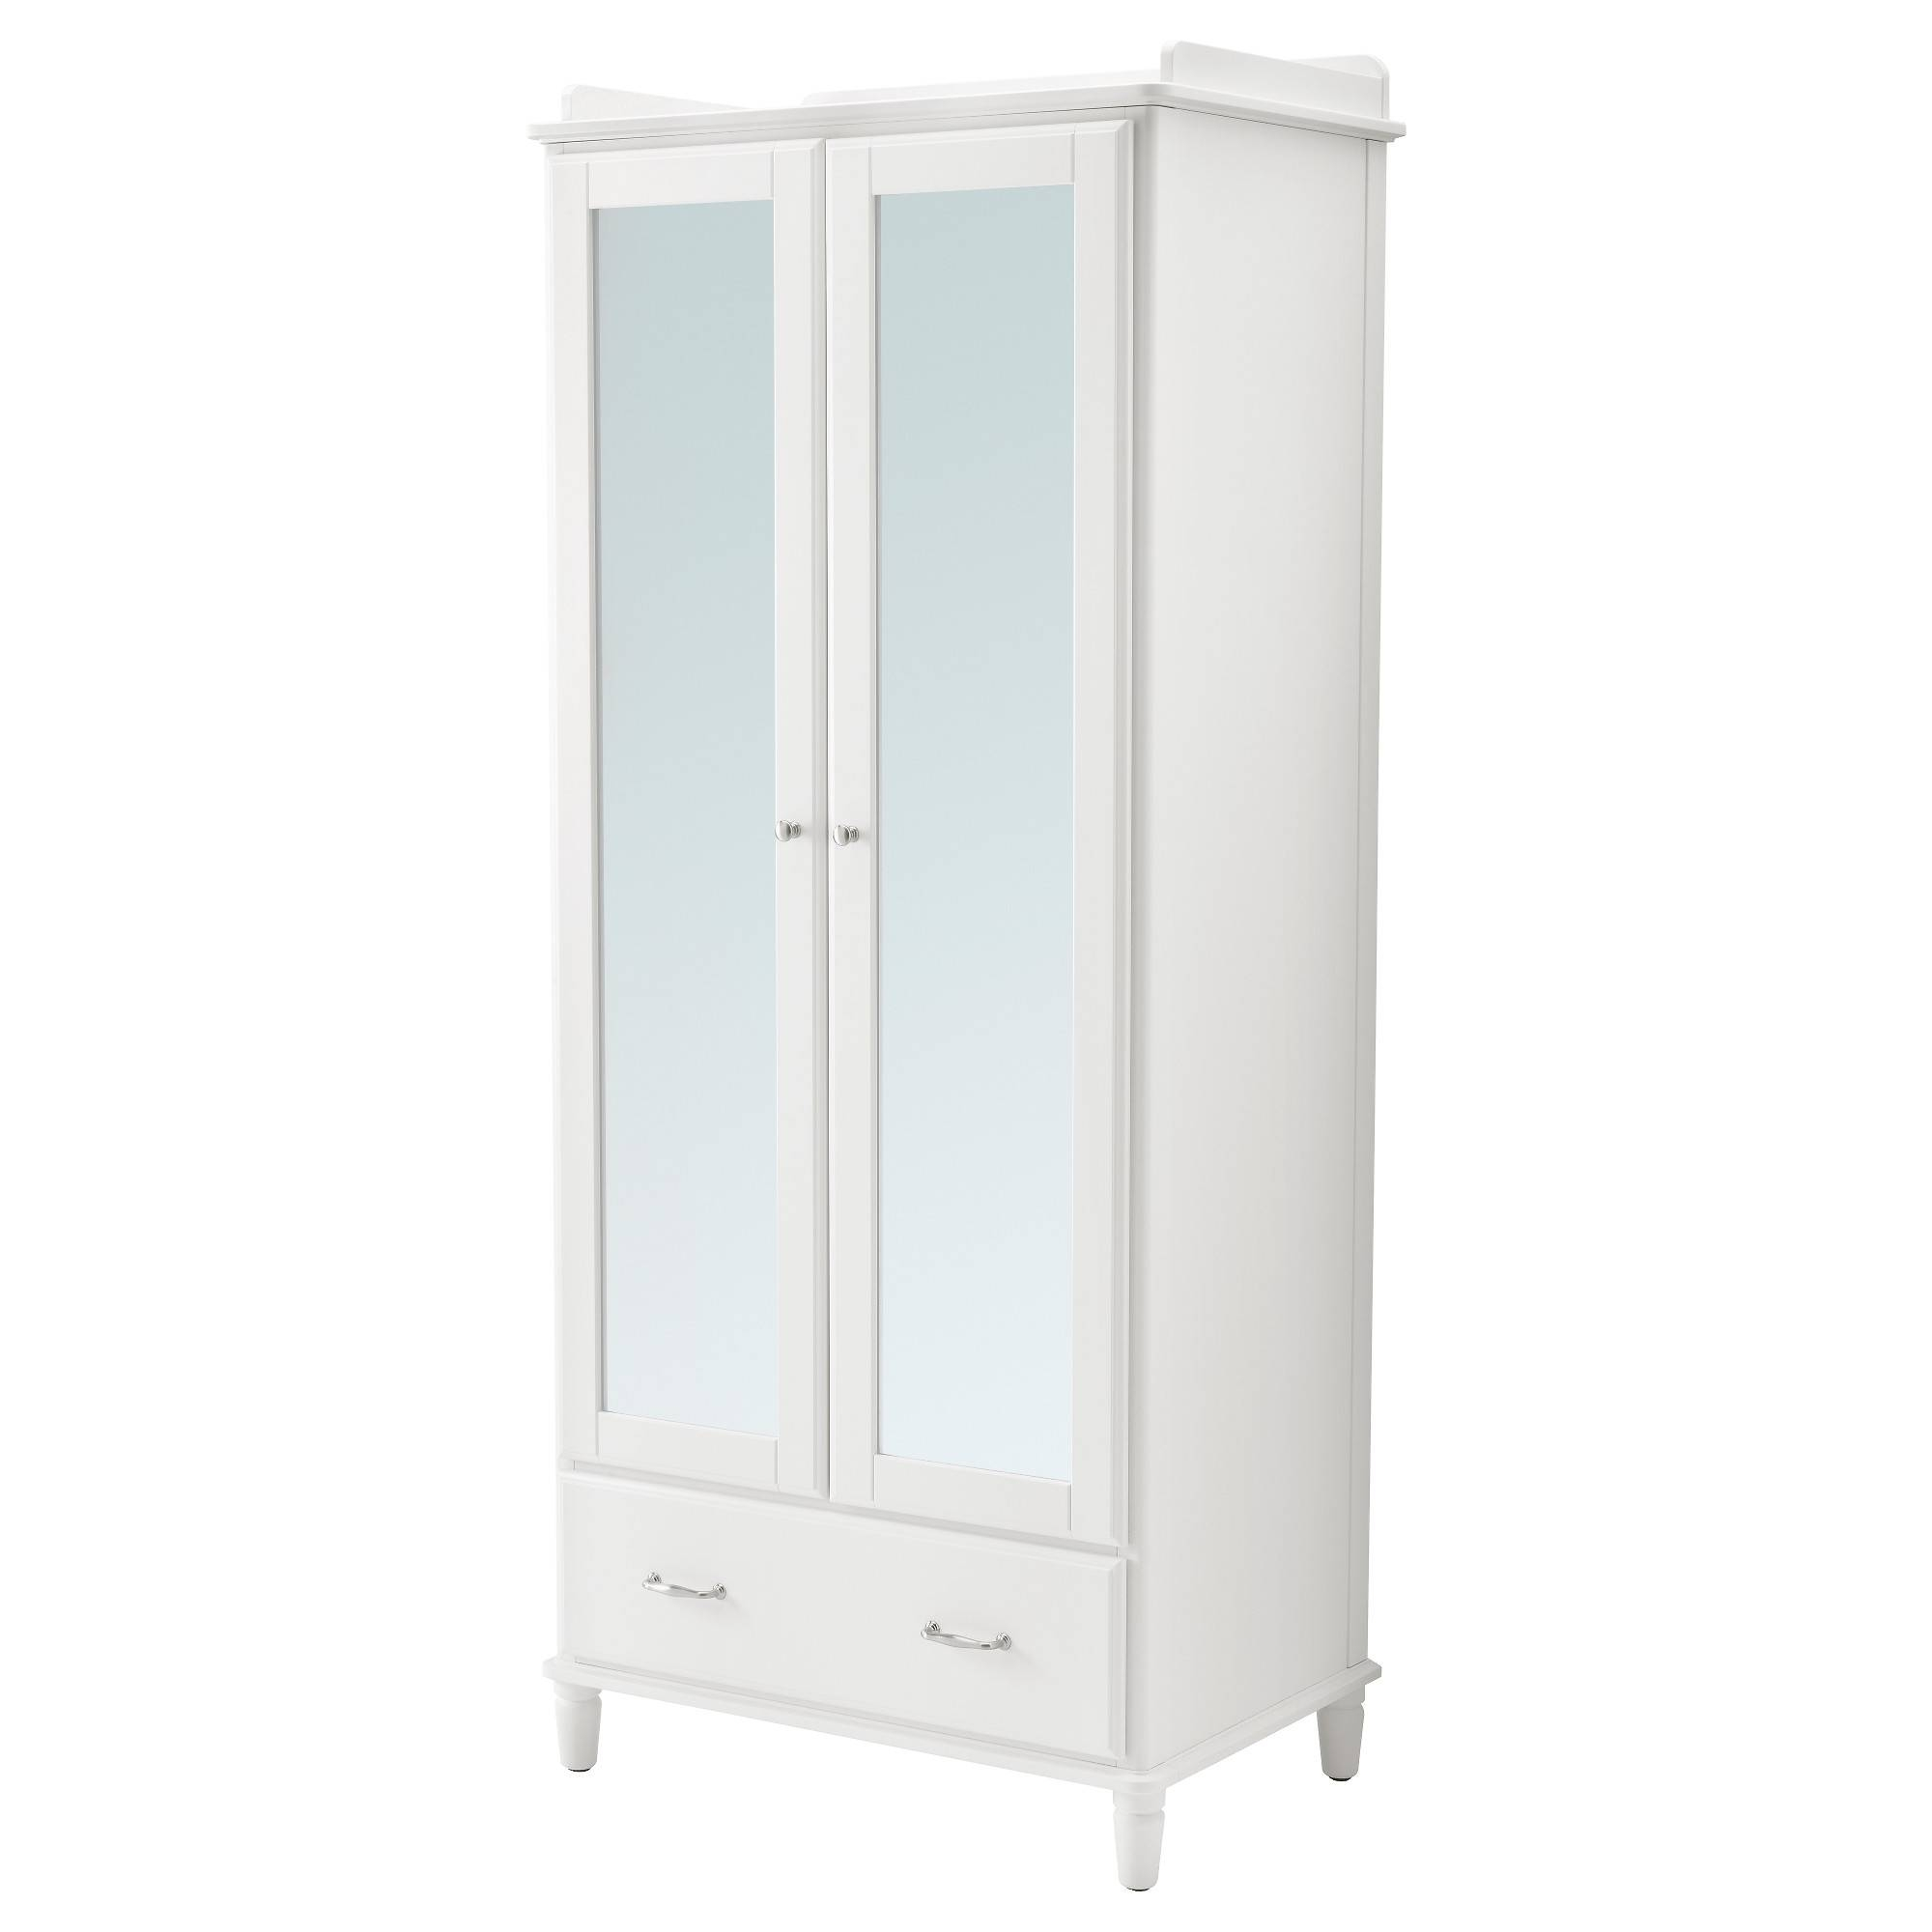 Wardrobes | Ikea with regard to Single White Wardrobes With Drawers (Image 13 of 15)